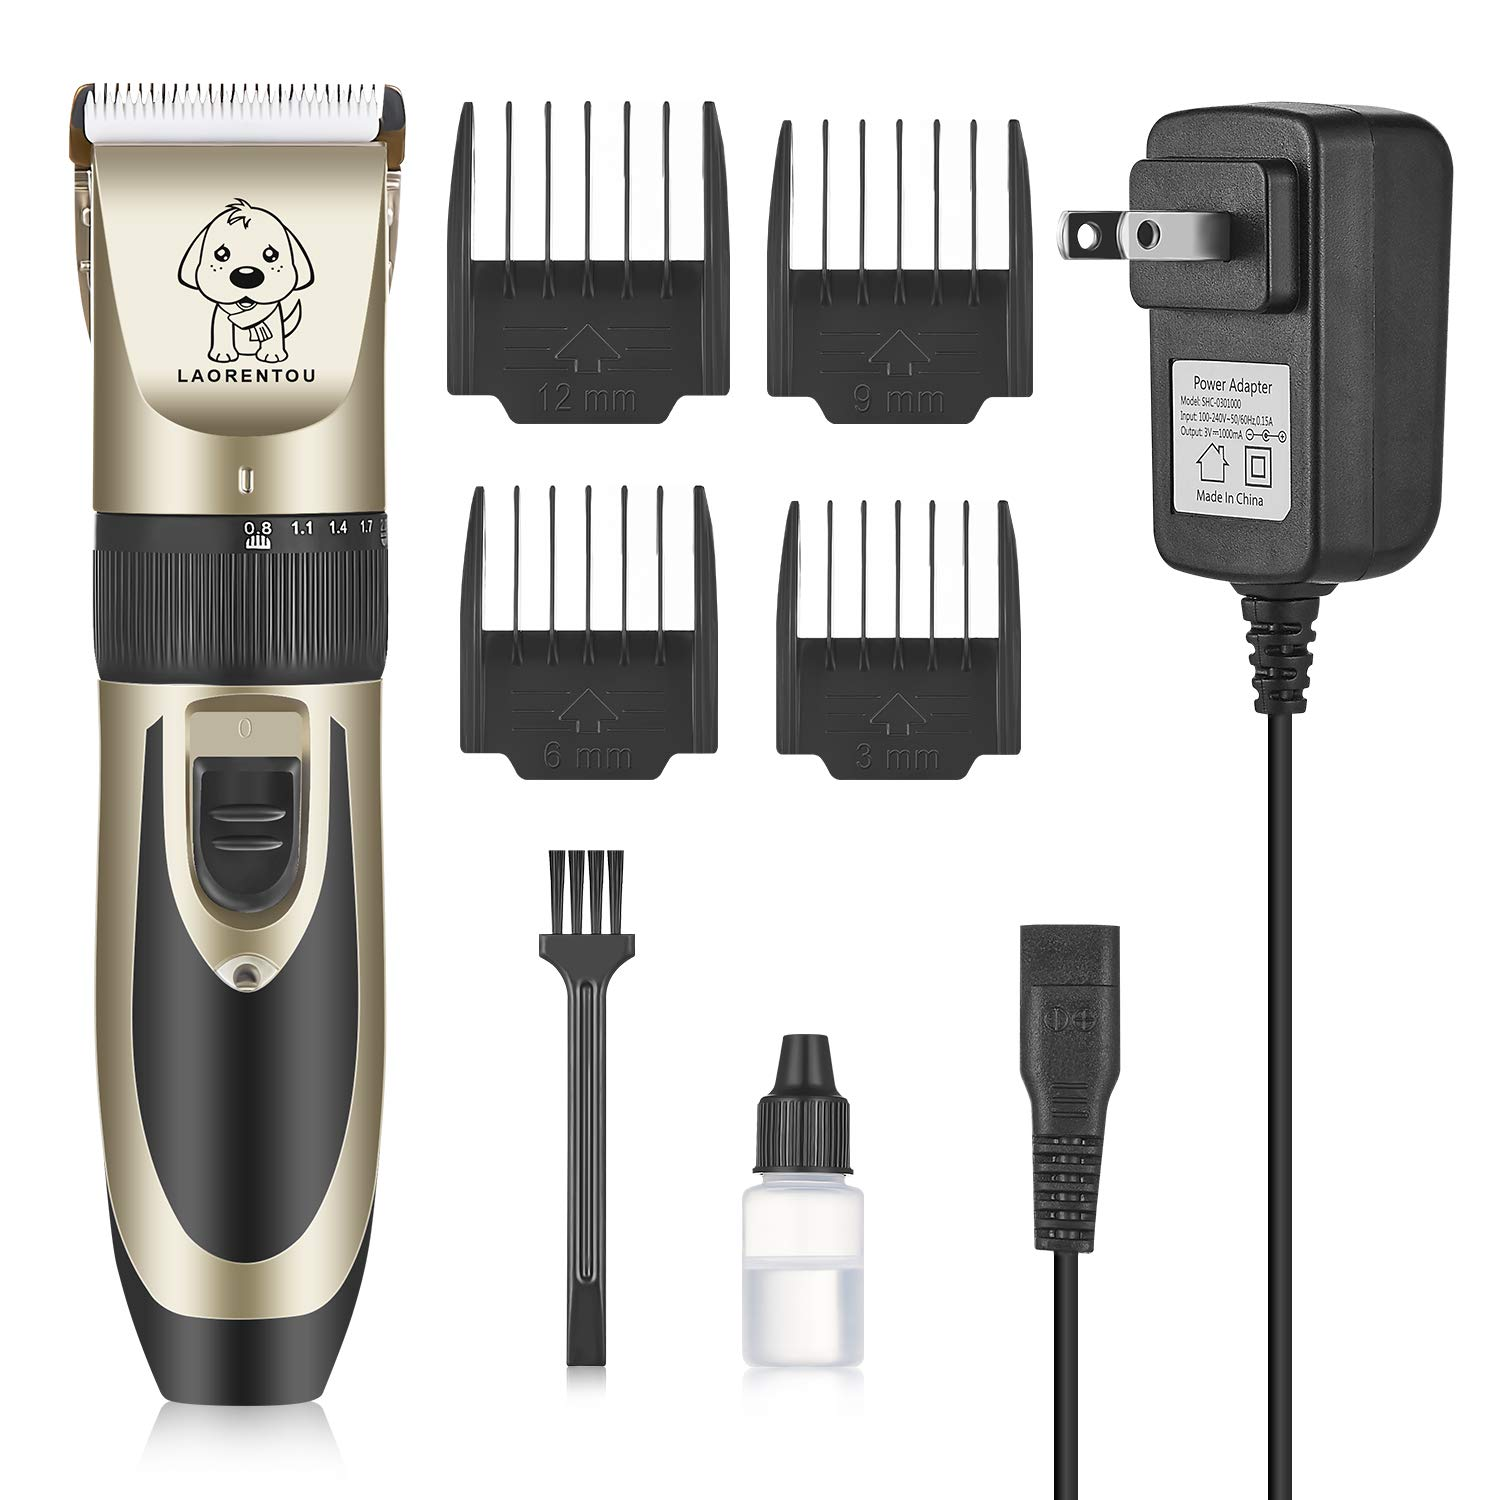 Pet Clippers-Professional Electric Pet Hair Shaver with 4 Guard Combs ,Cordless & Rechargeable, Dual Stainless Steel & Ceramic Blades, Cat & Dog Grooming, Trimming, Shaving, Clipping, Highly Portable by YIKELONG